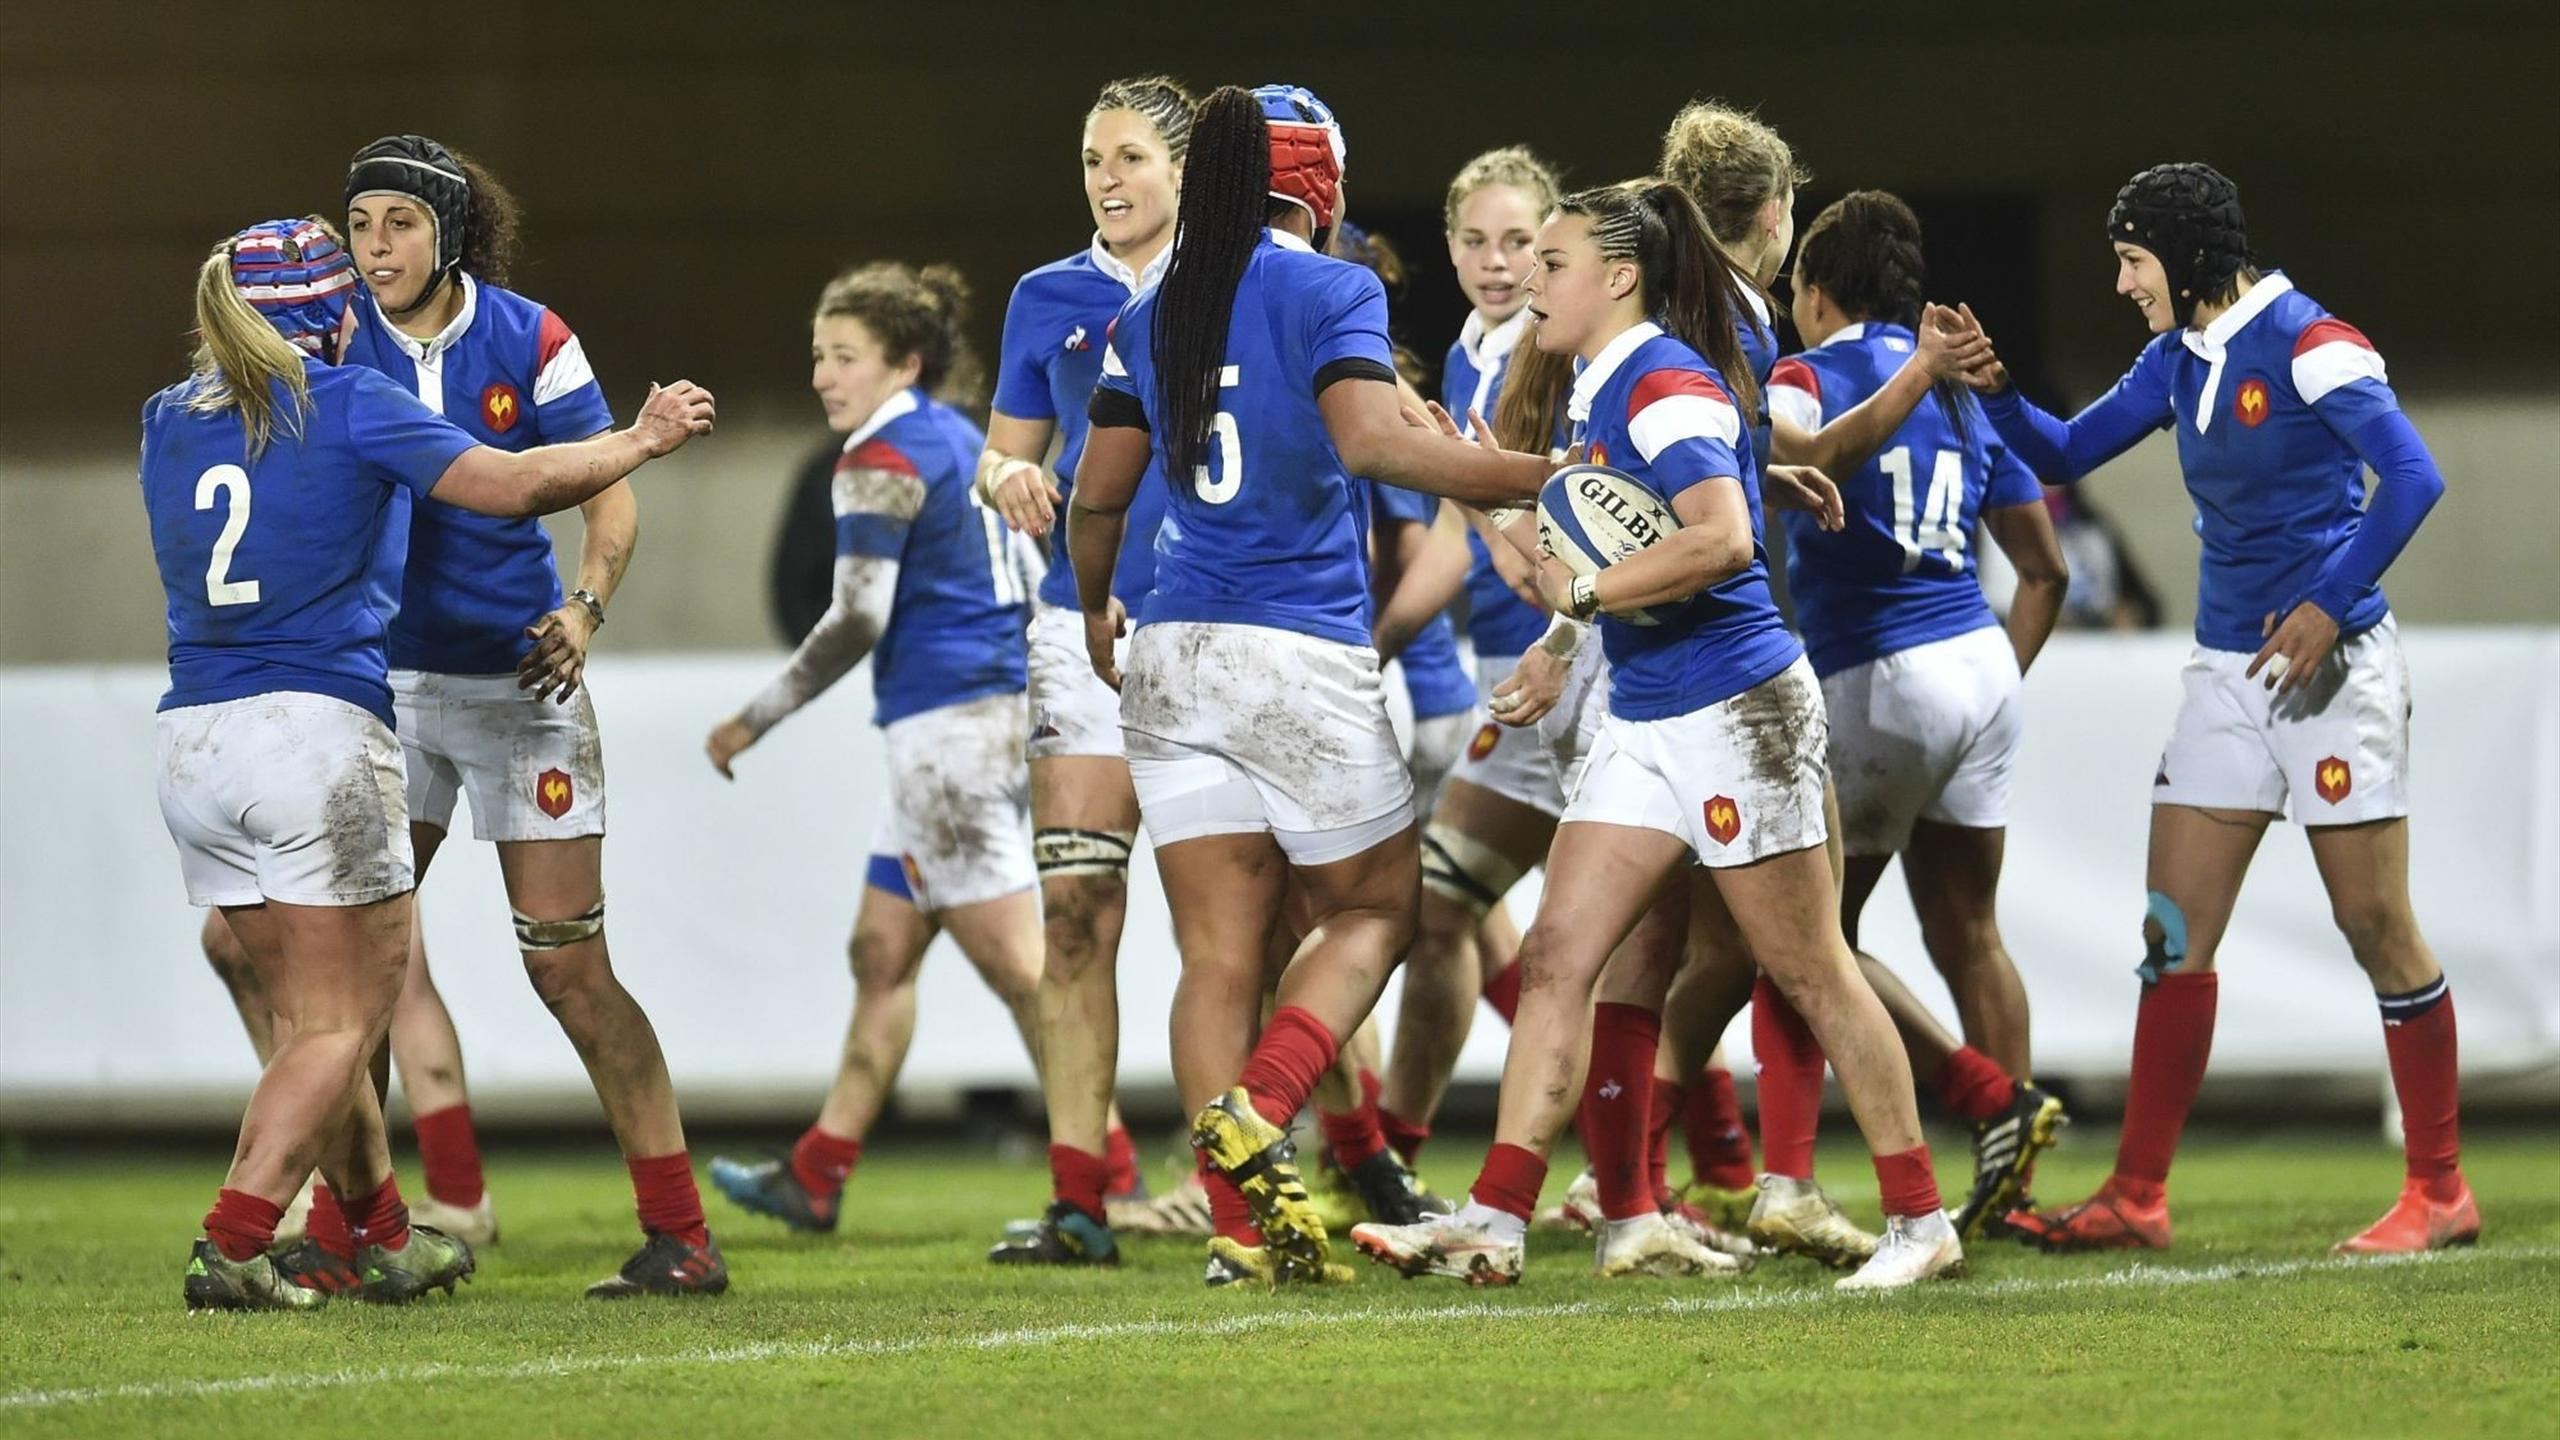 Calendrier 2020 Rugby.Tournoi Des 6 Nations Feminin 2020 Le Calendrier Est Tombe